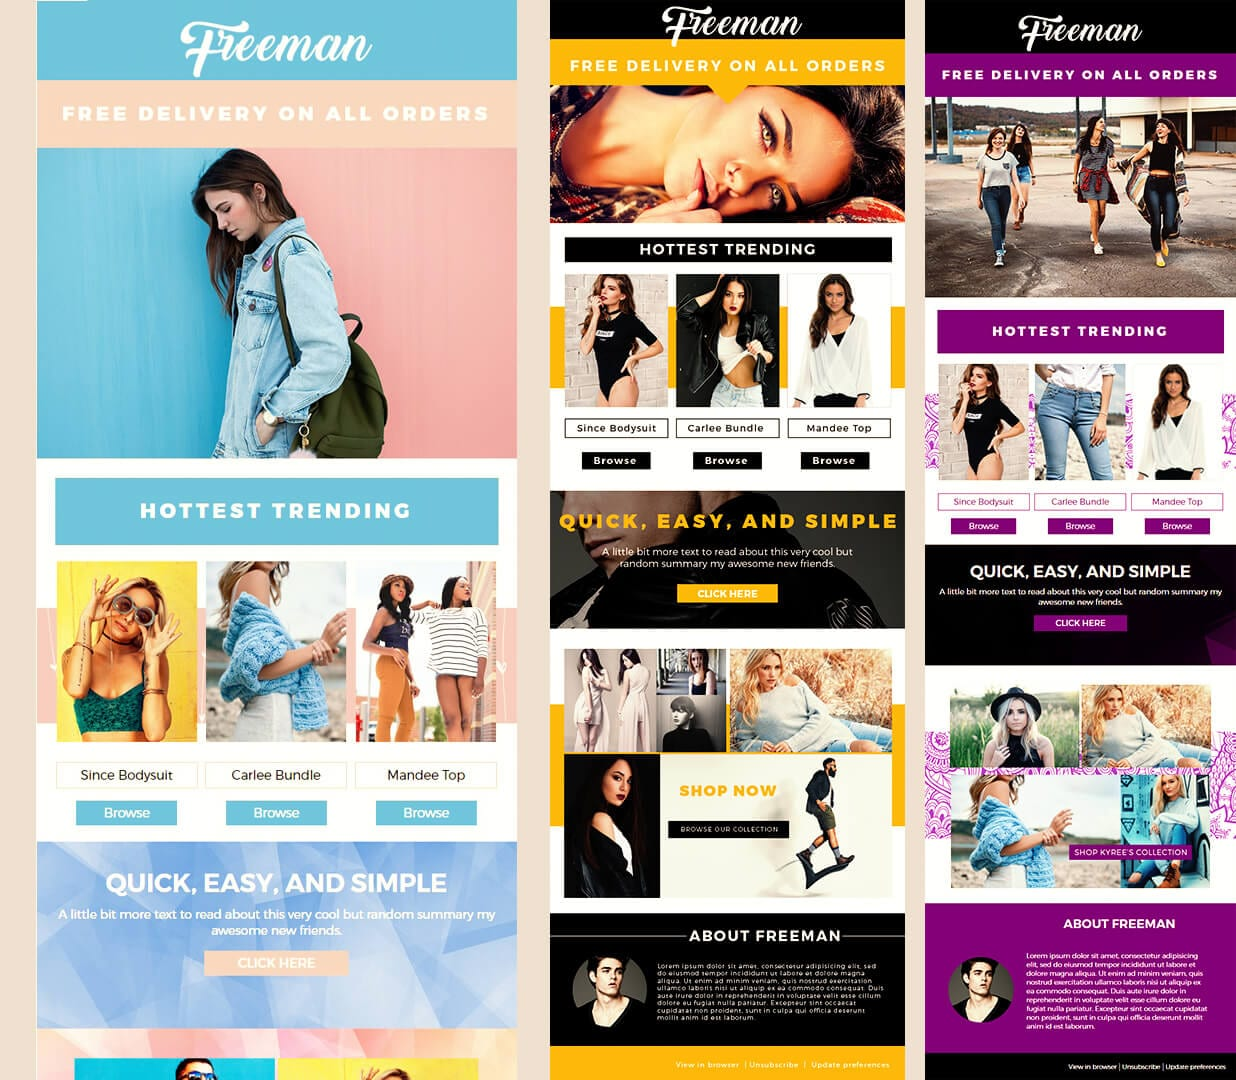 Freeman Fashion Premium Mailchimp Email Newsletter Template promo images